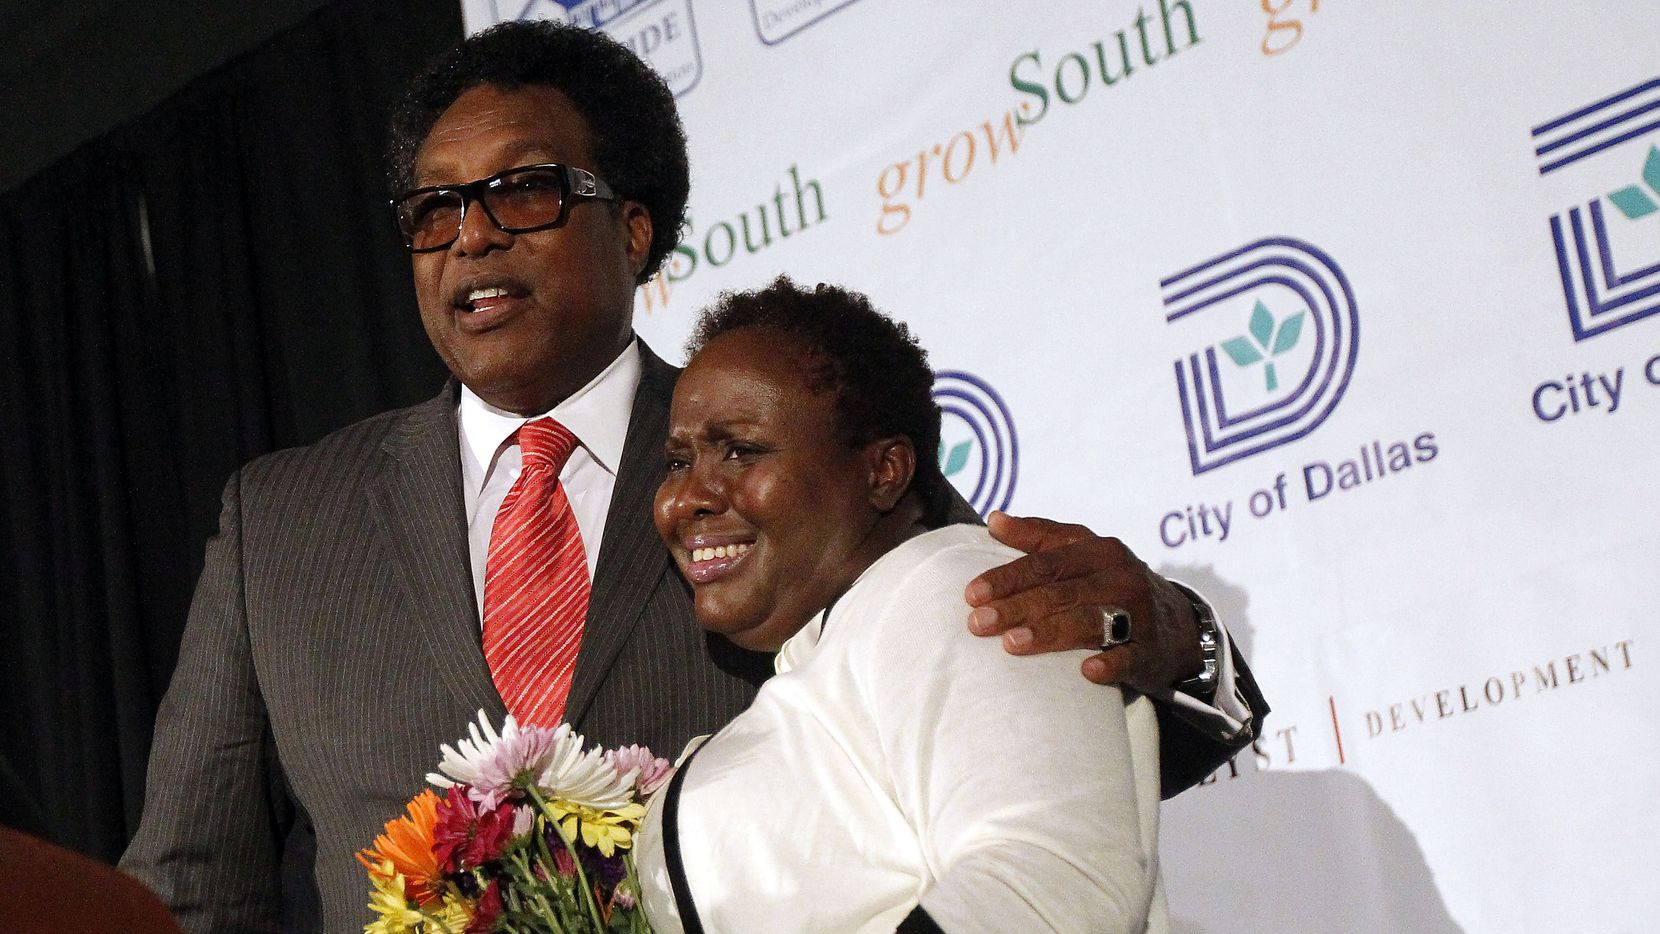 Dwaine Caraway presented a bouquet of flowers to Carolyn Davis at the new Lancaster Urban Village in 2014, when both were Dallas City Council members.